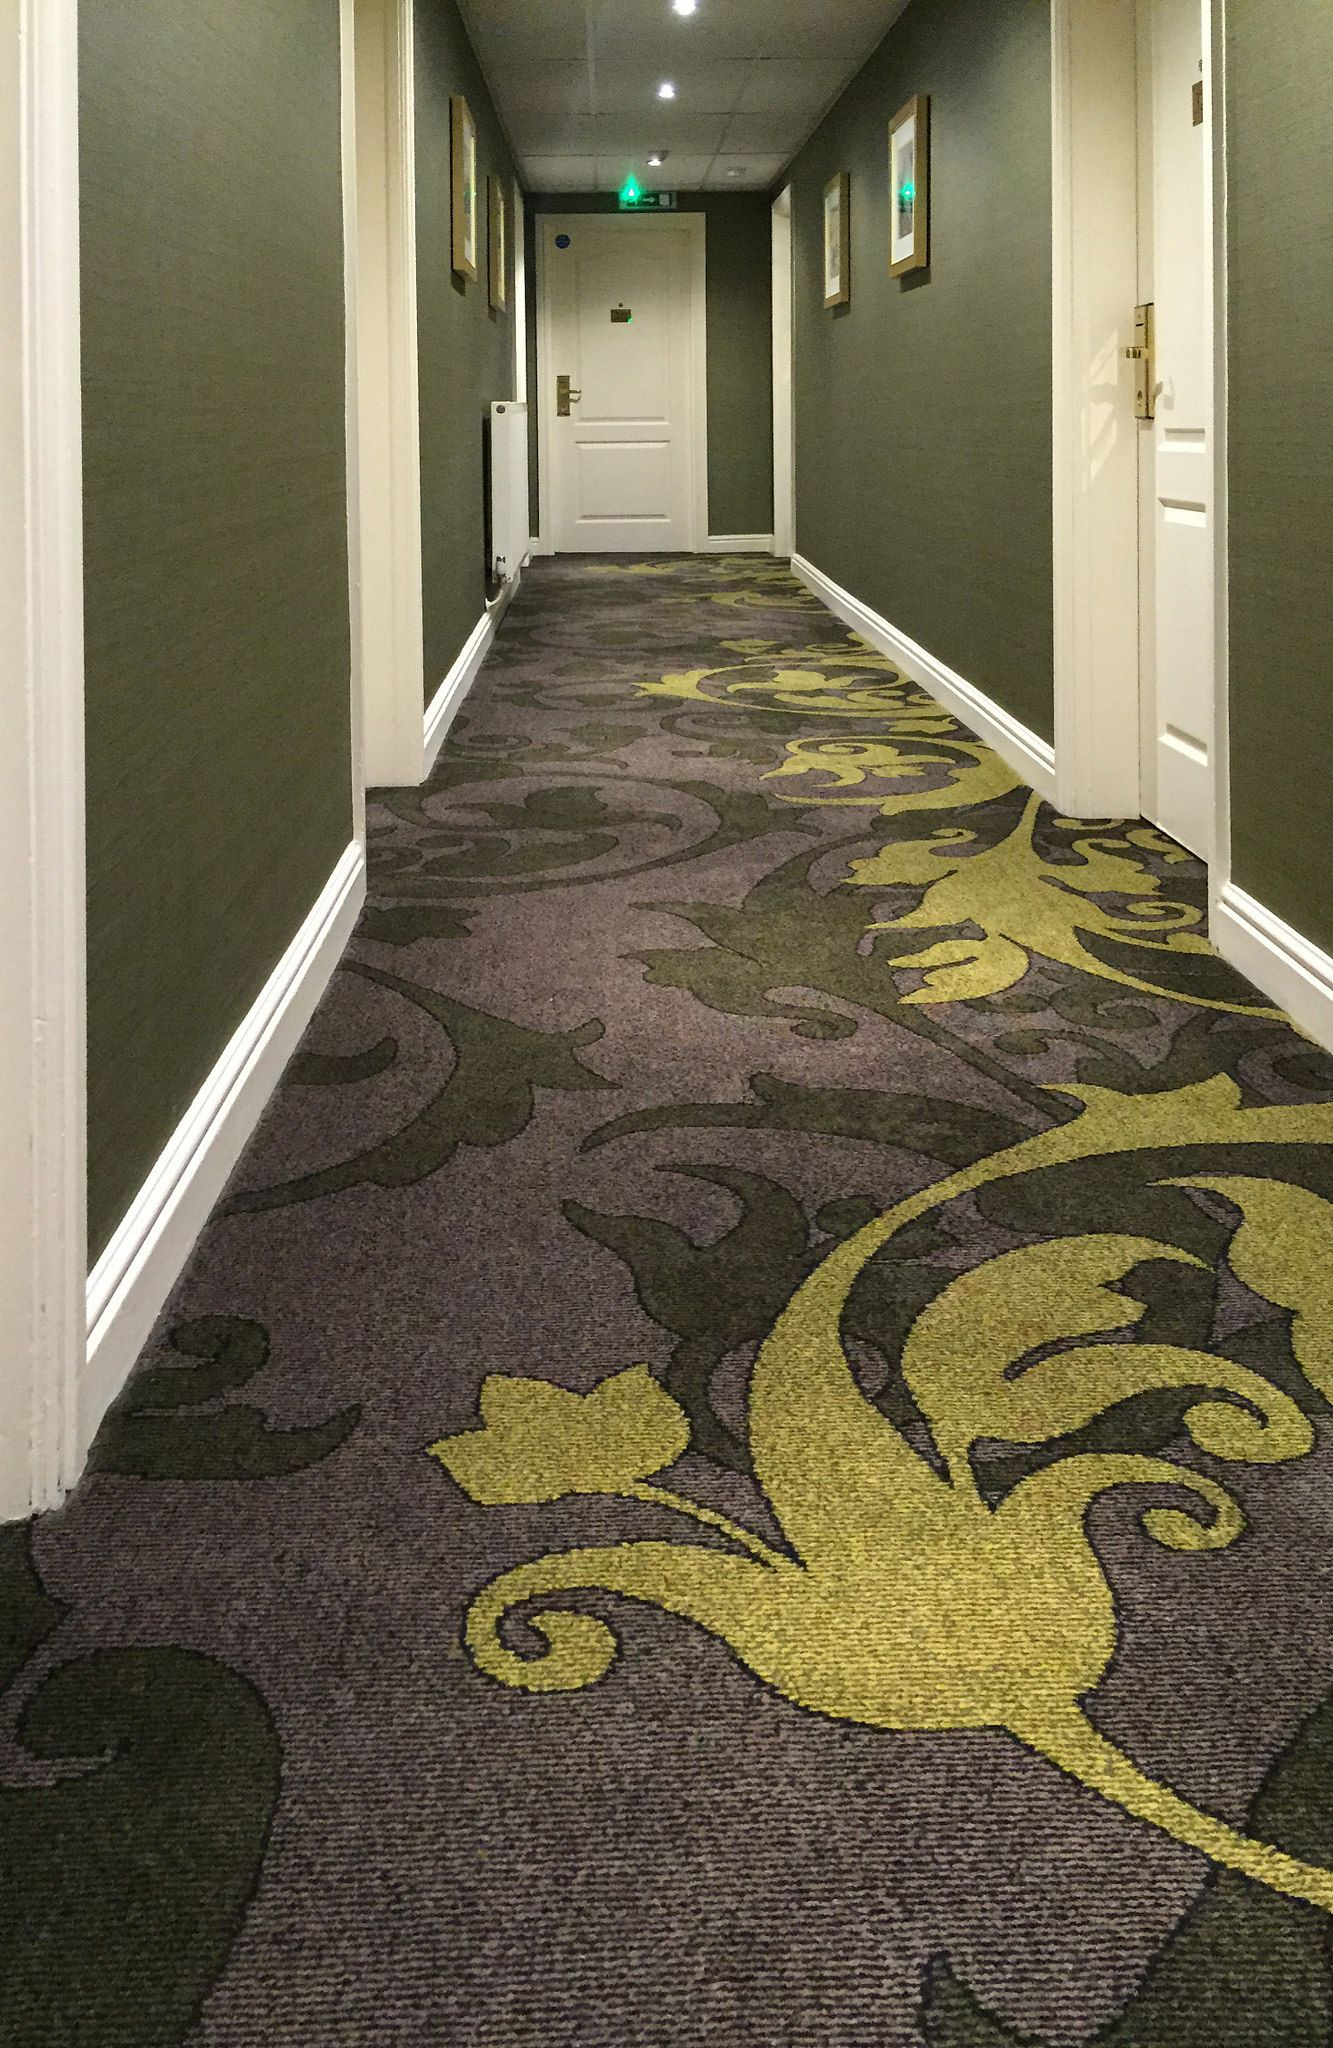 Pin By Alan Russell On Carpet In 2019 Hotel Carpet